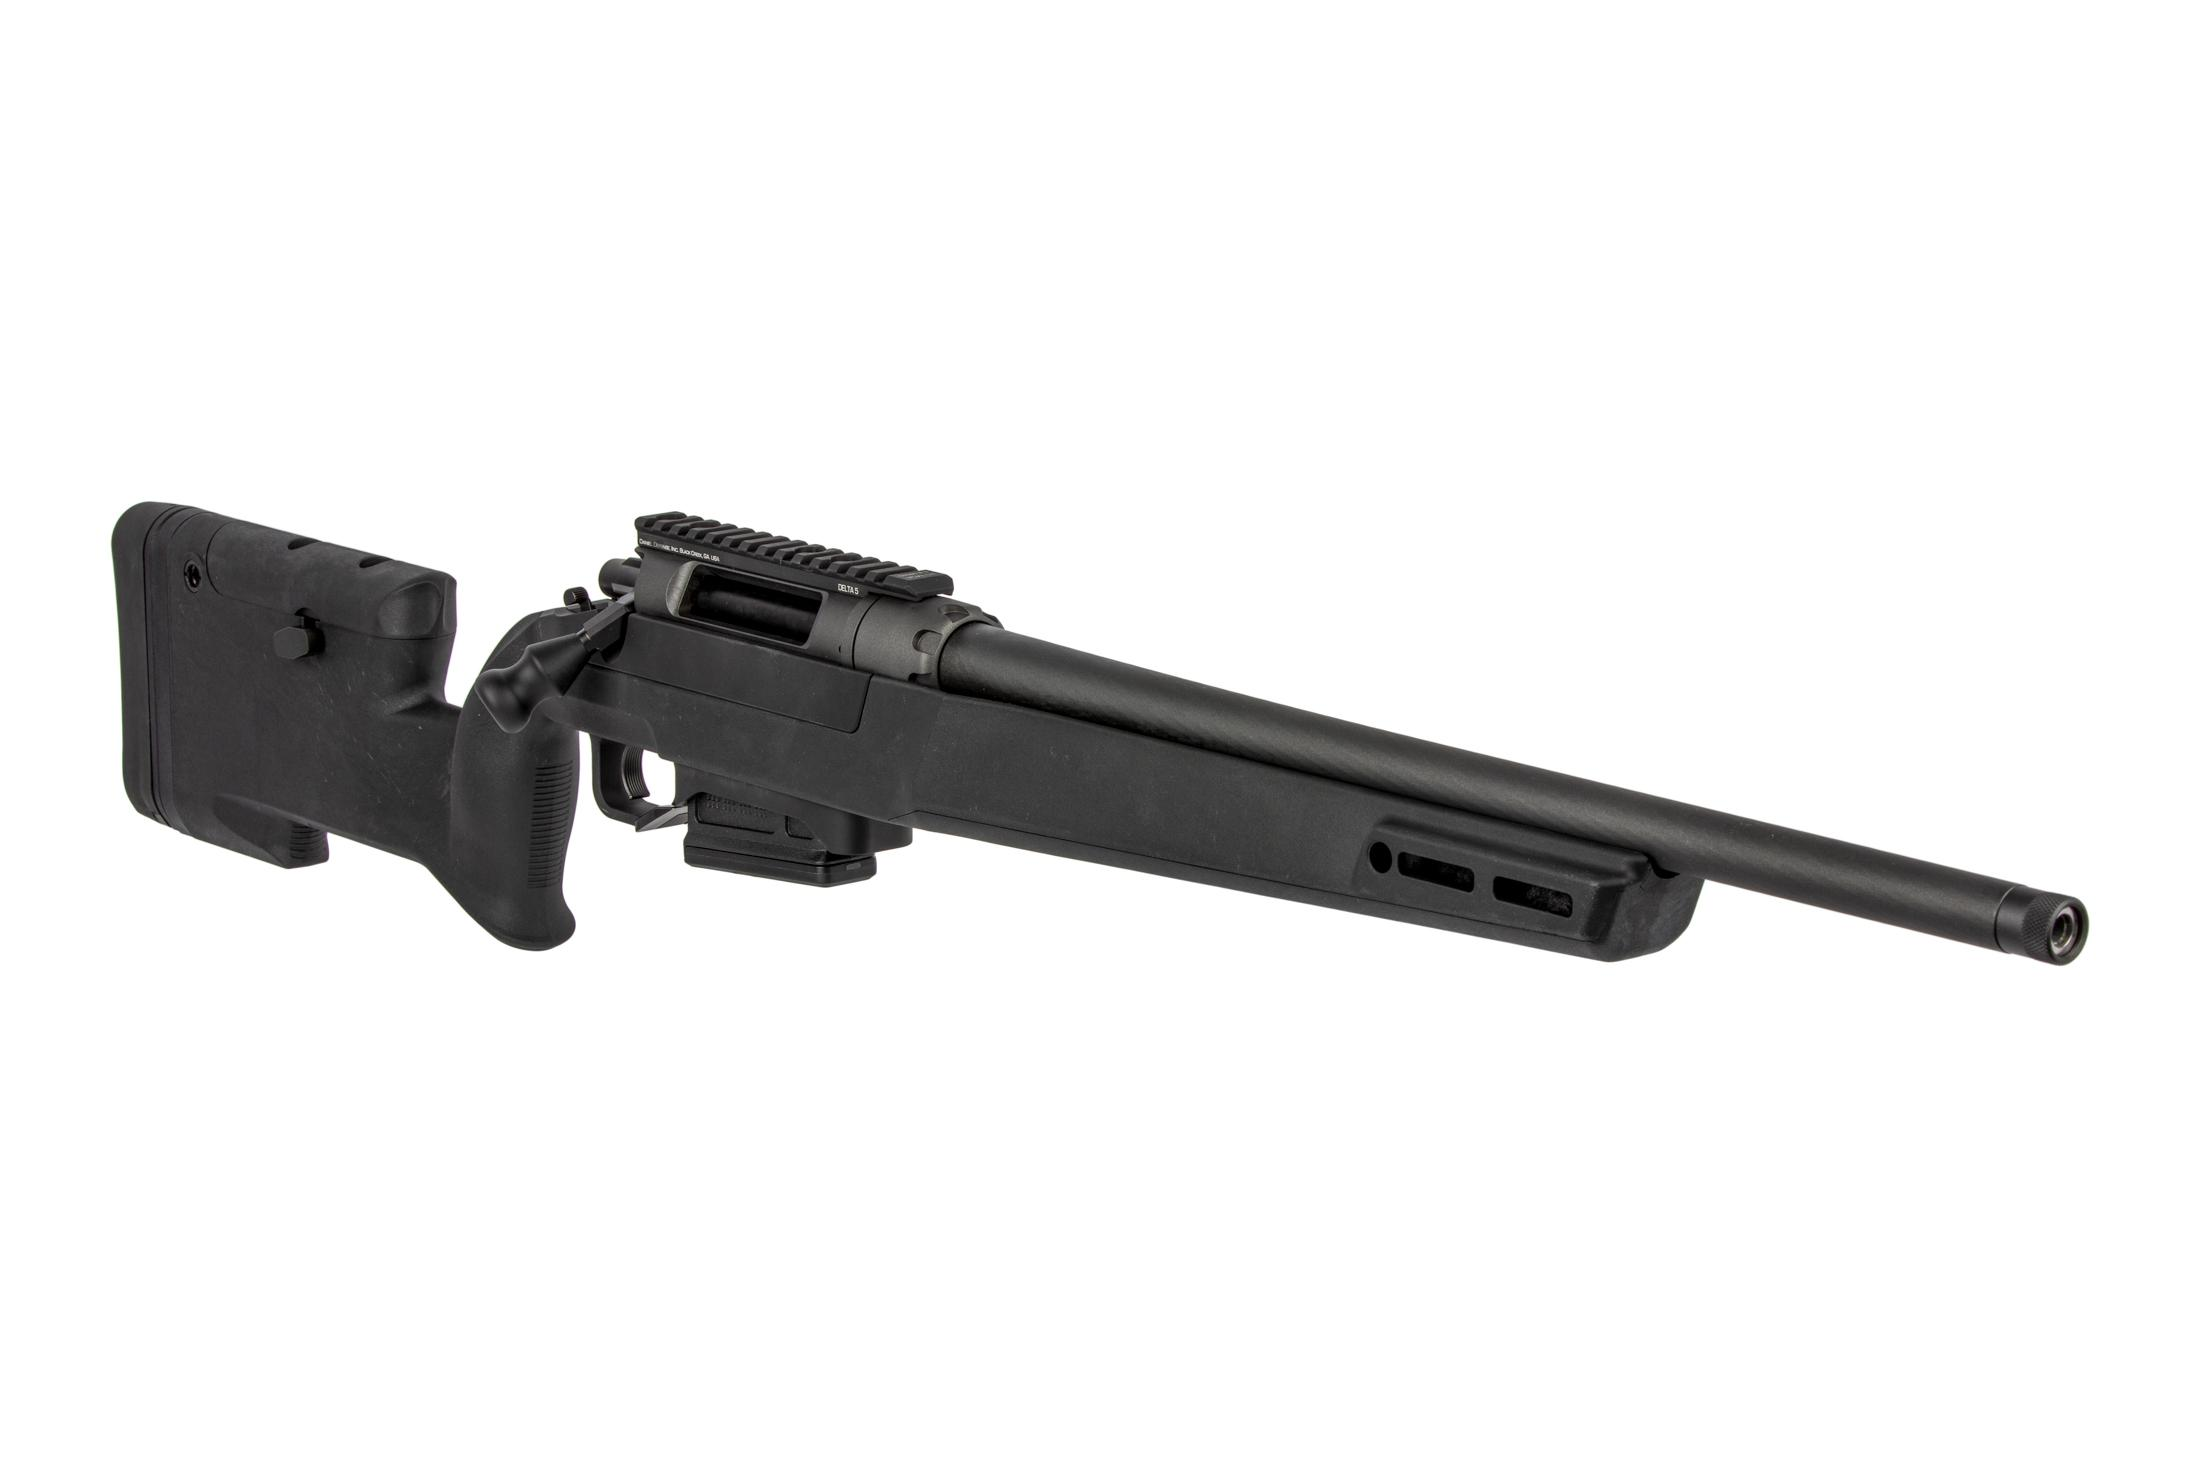 The Delta 5 308 rifle features a carbon fiber polymer stock